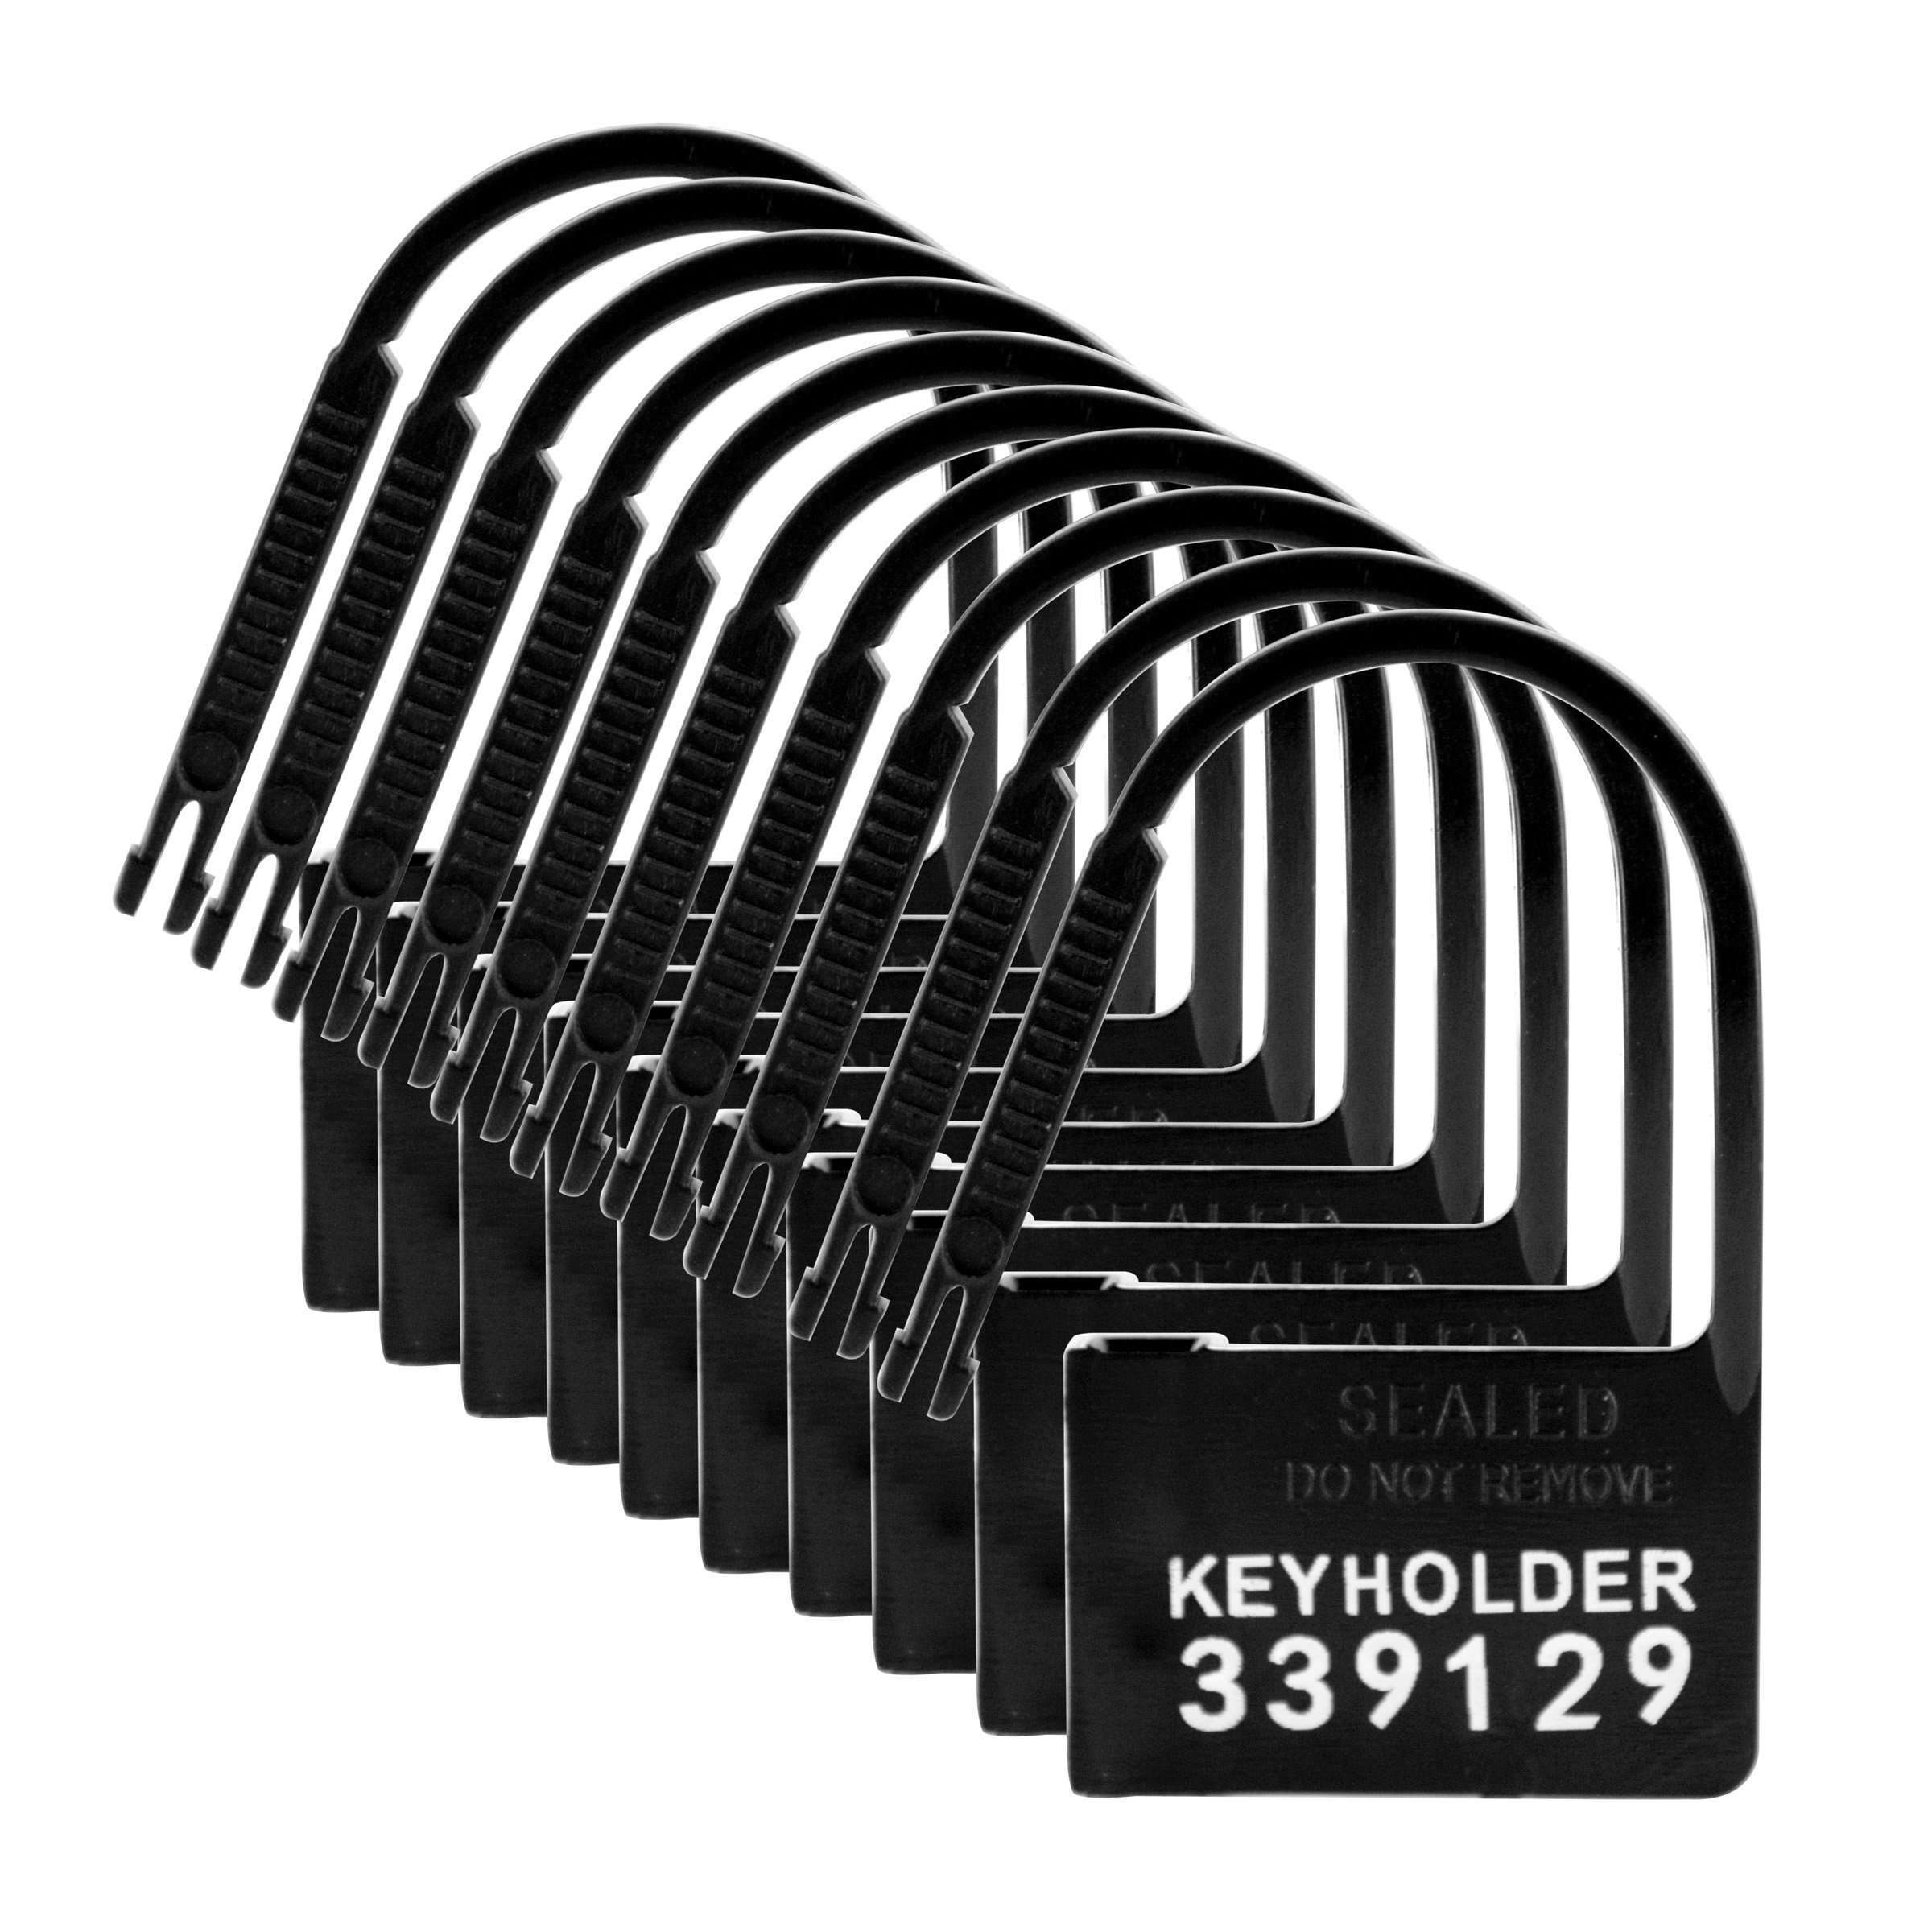 Keyholder 10 Pack Numbered Plastic Chastity Locks